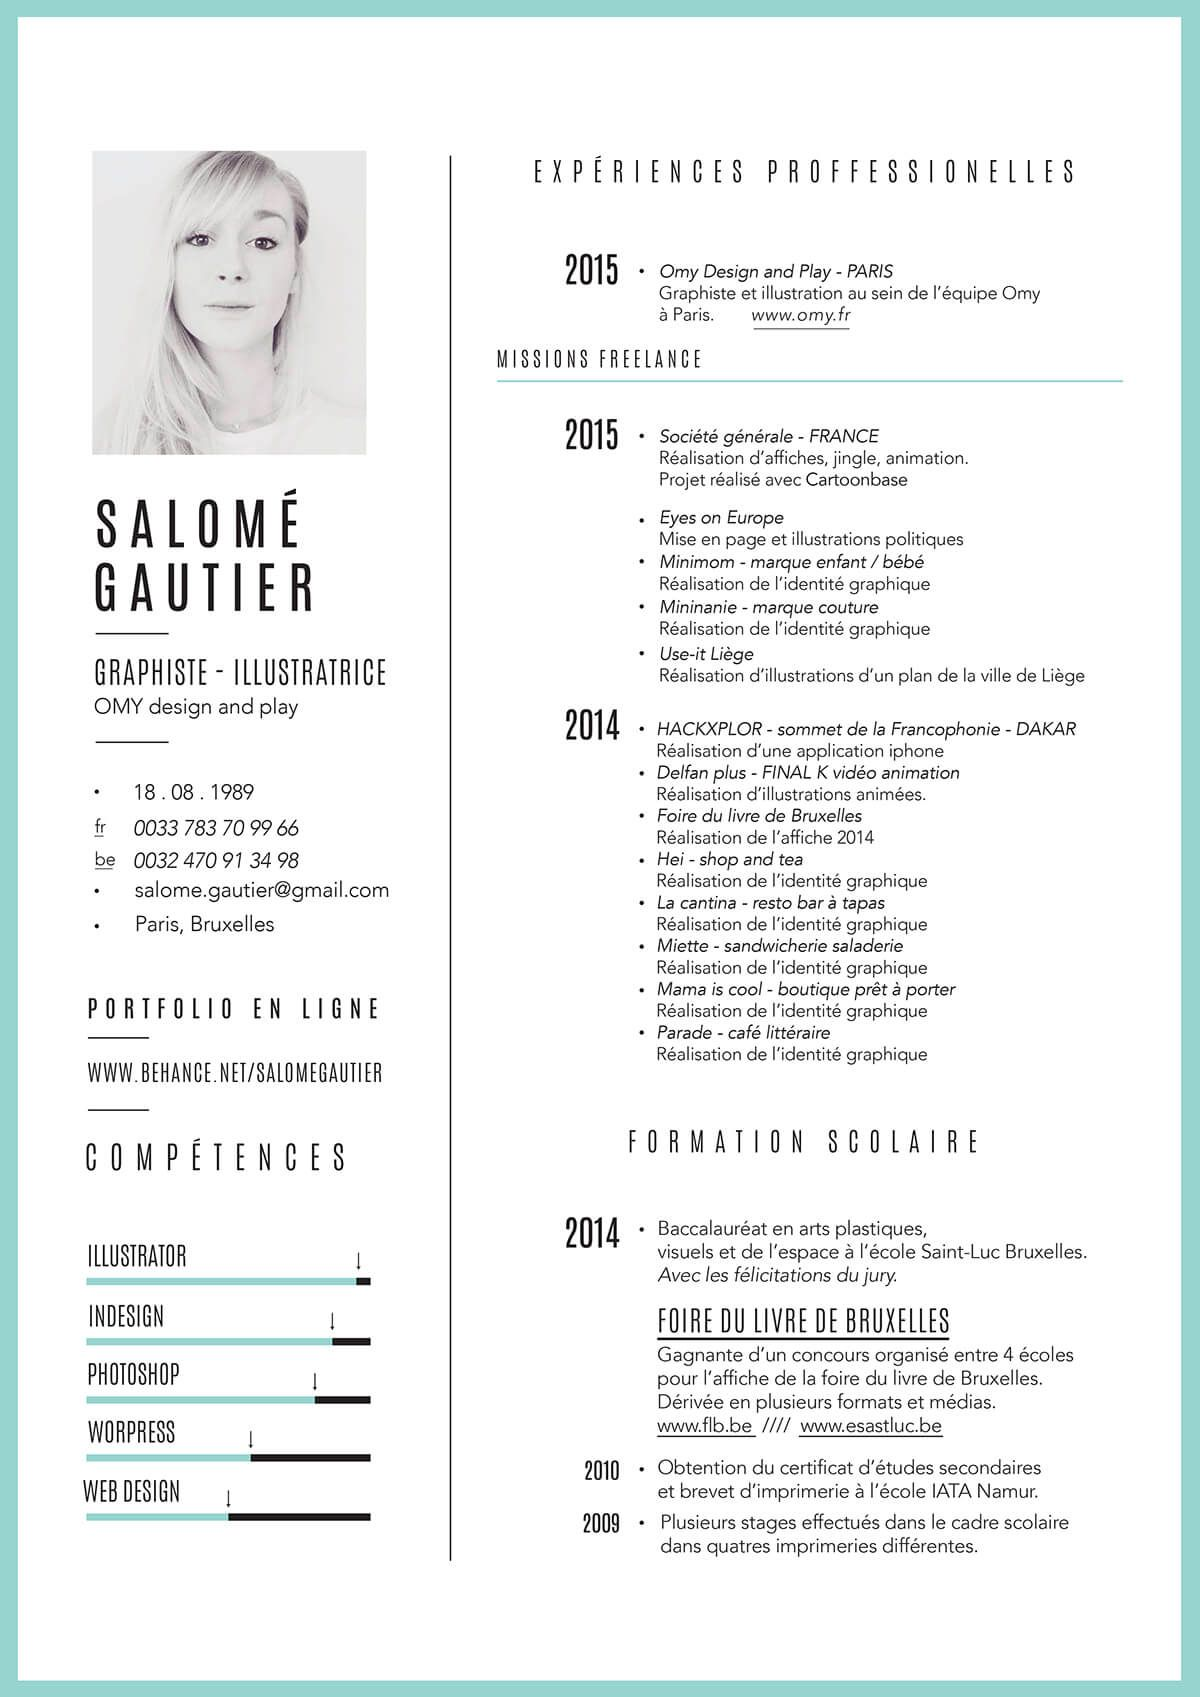 emphasize career highlights on your resume by using color strategically